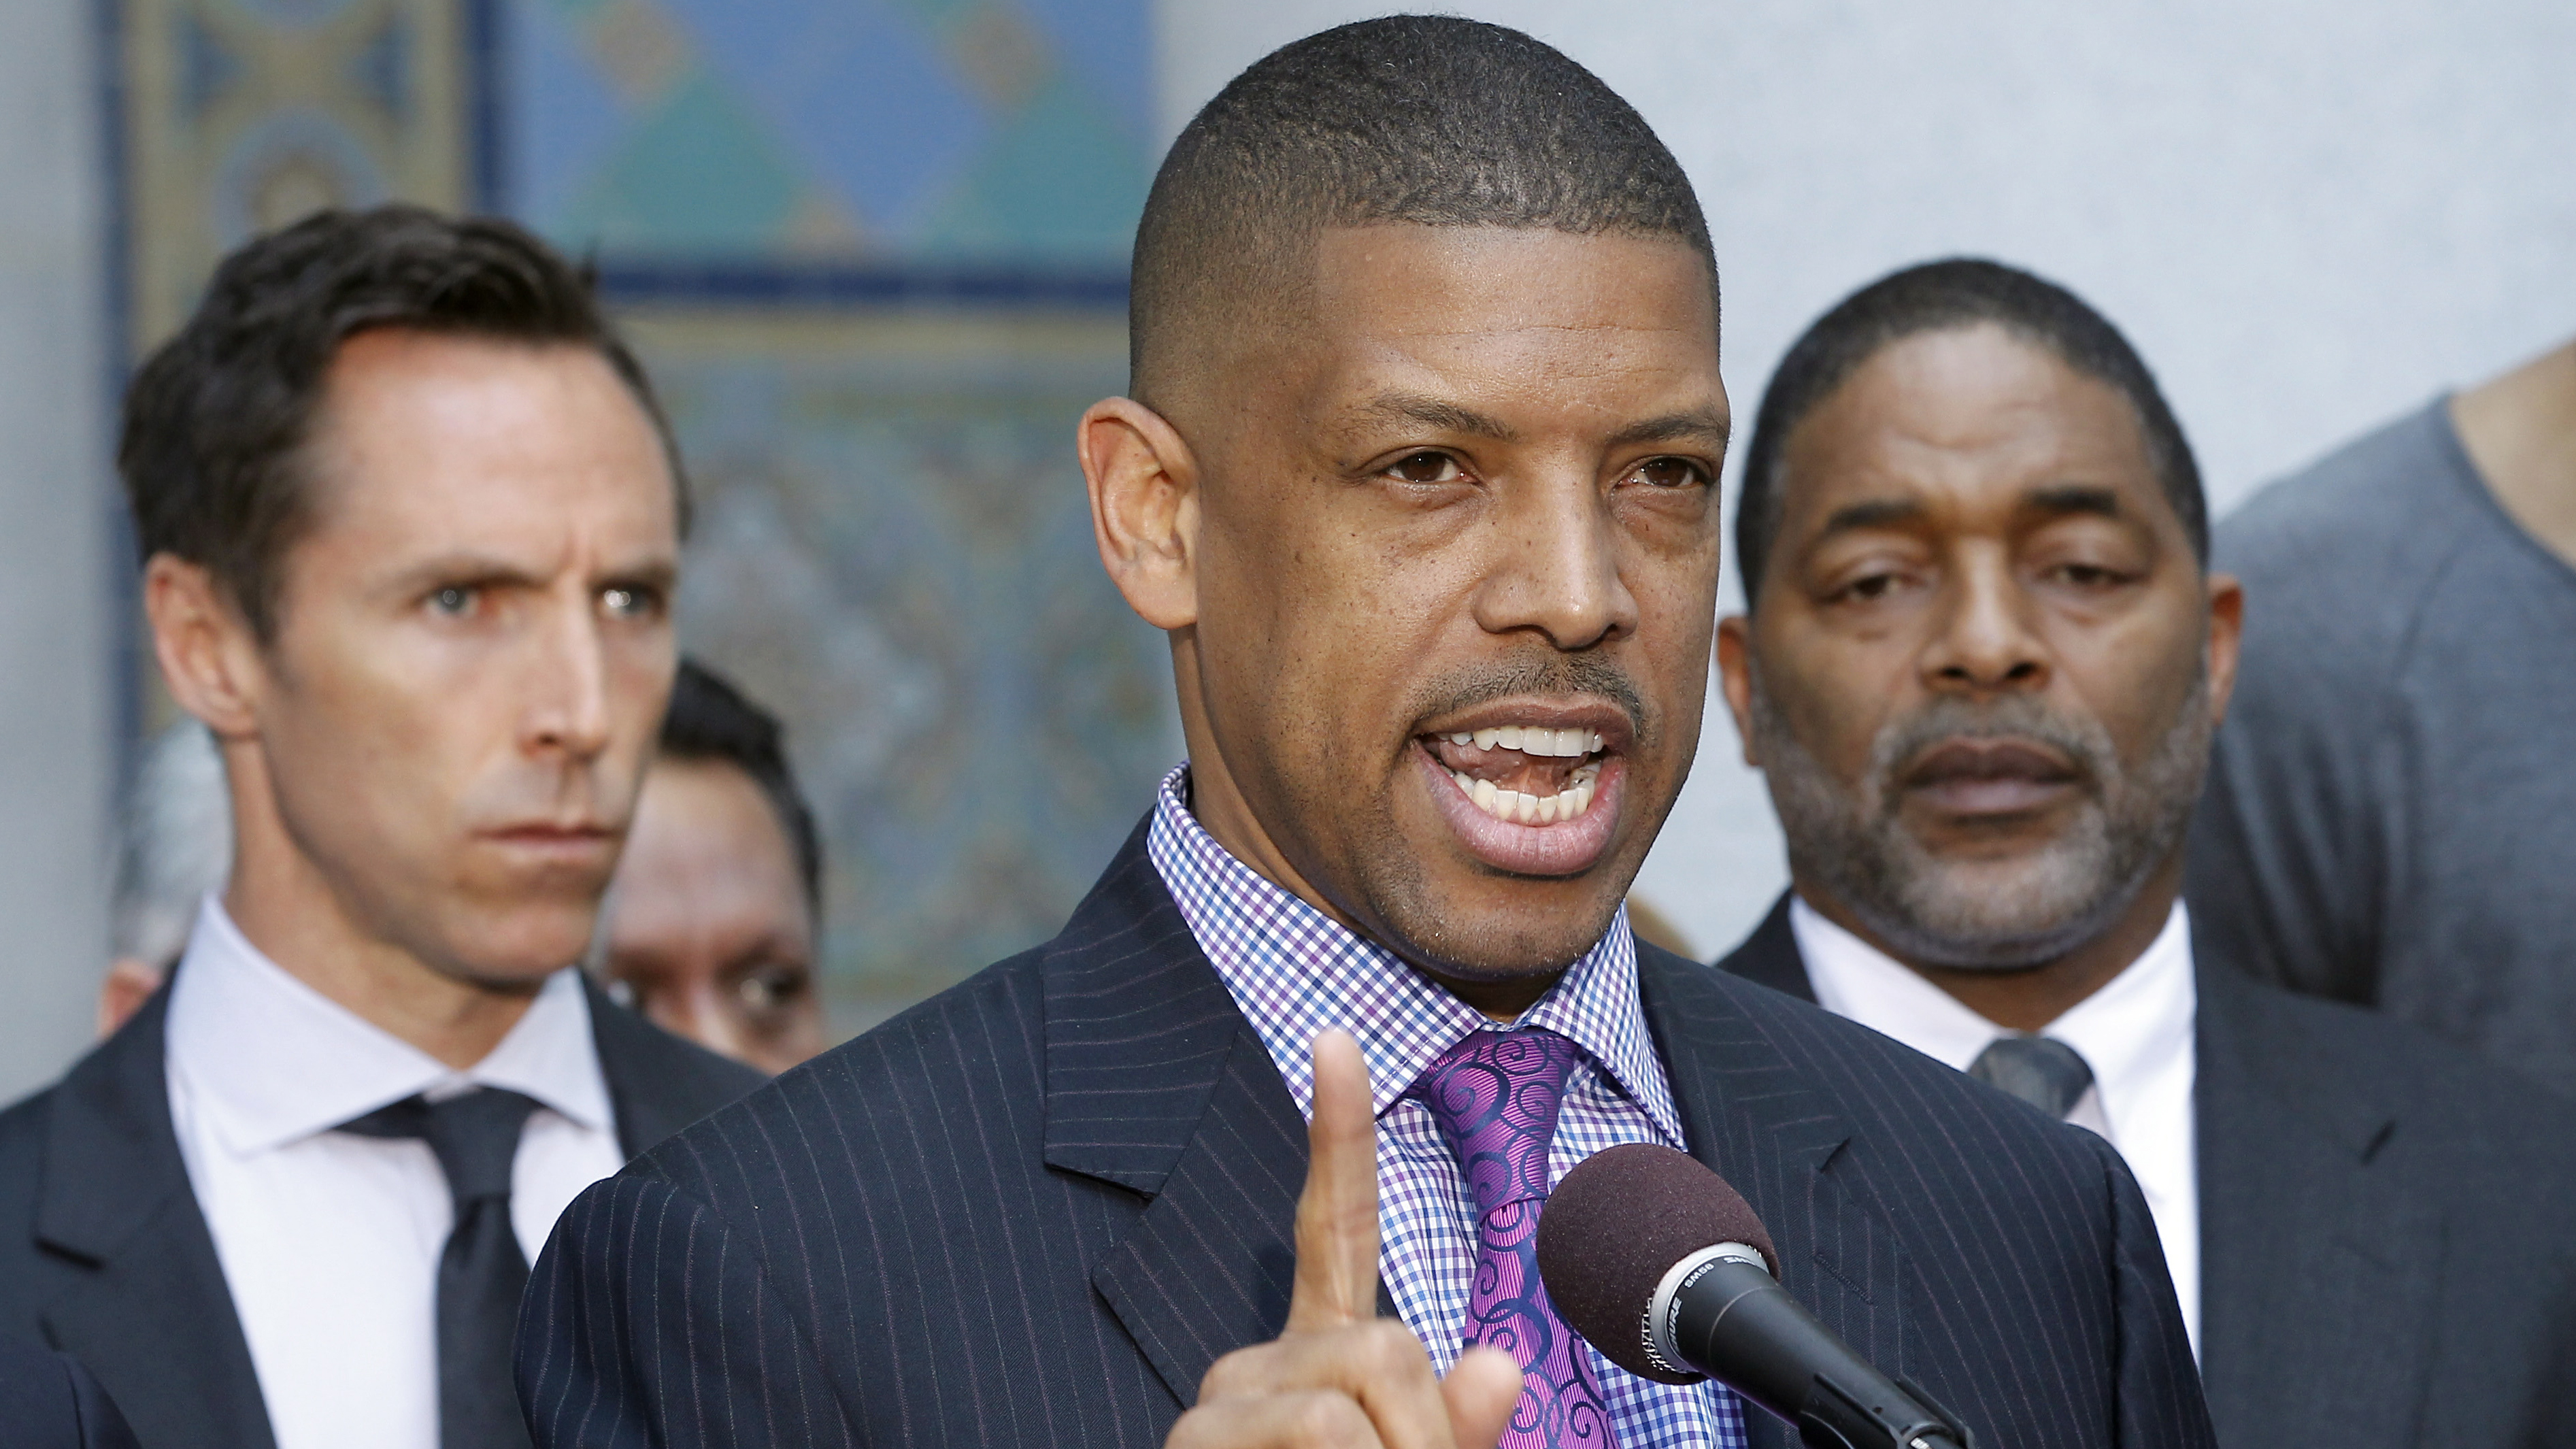 Sacramento mayor Kevin Johnson beats up man who threw pie in his